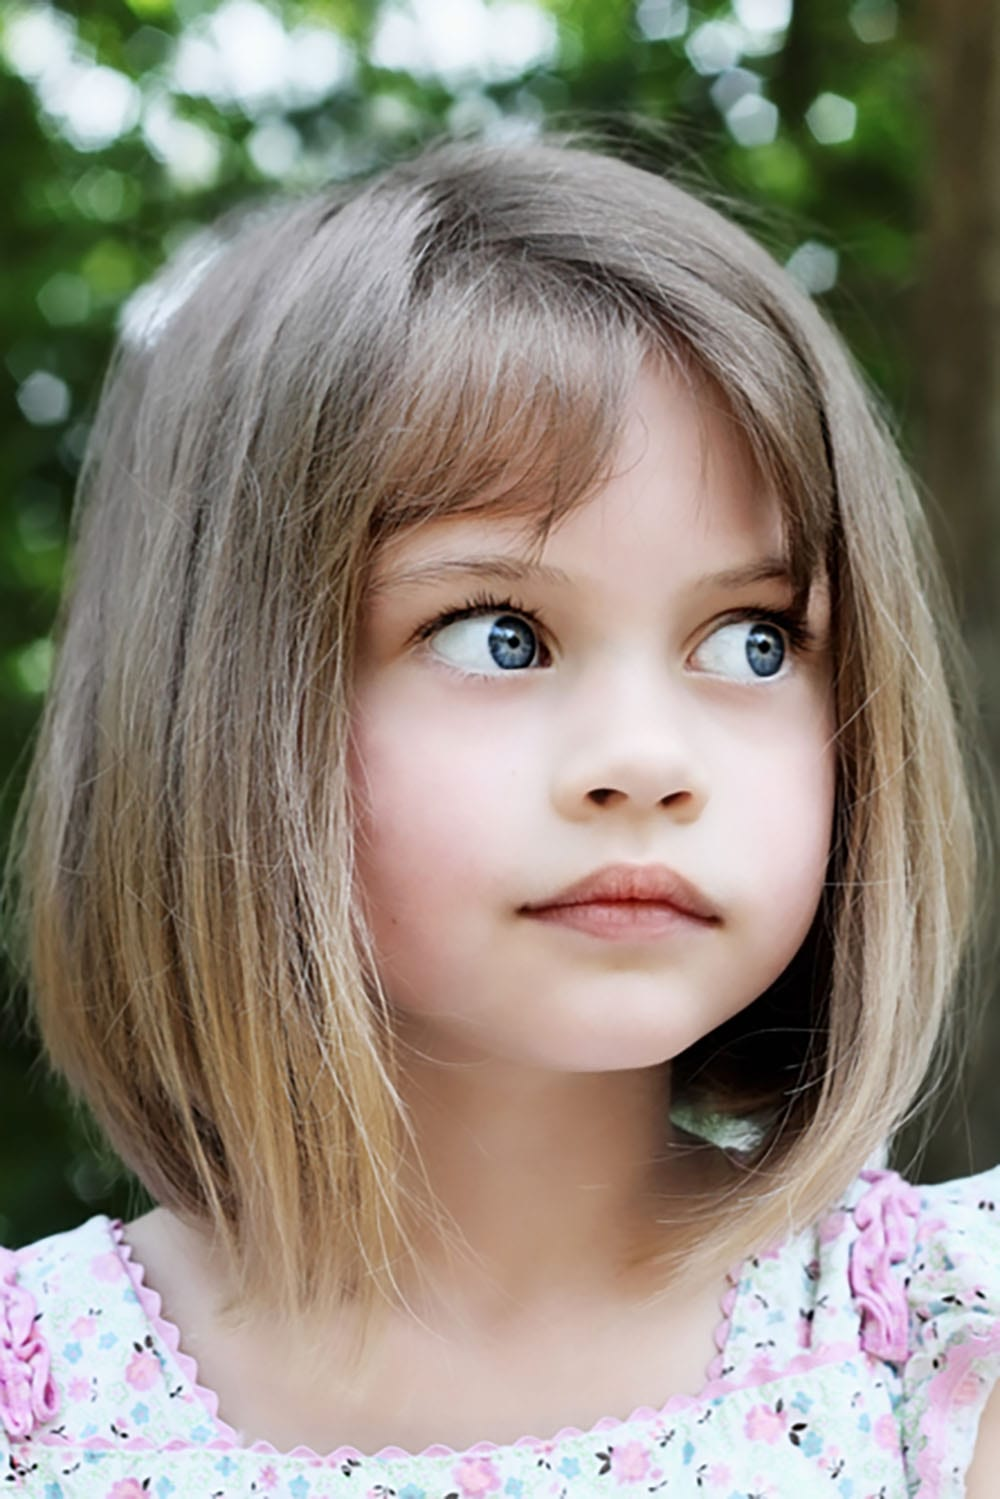 Surprising 50 Short Haircuts For Little Girls Short Haircuts Models Natural Hairstyles Runnerswayorg